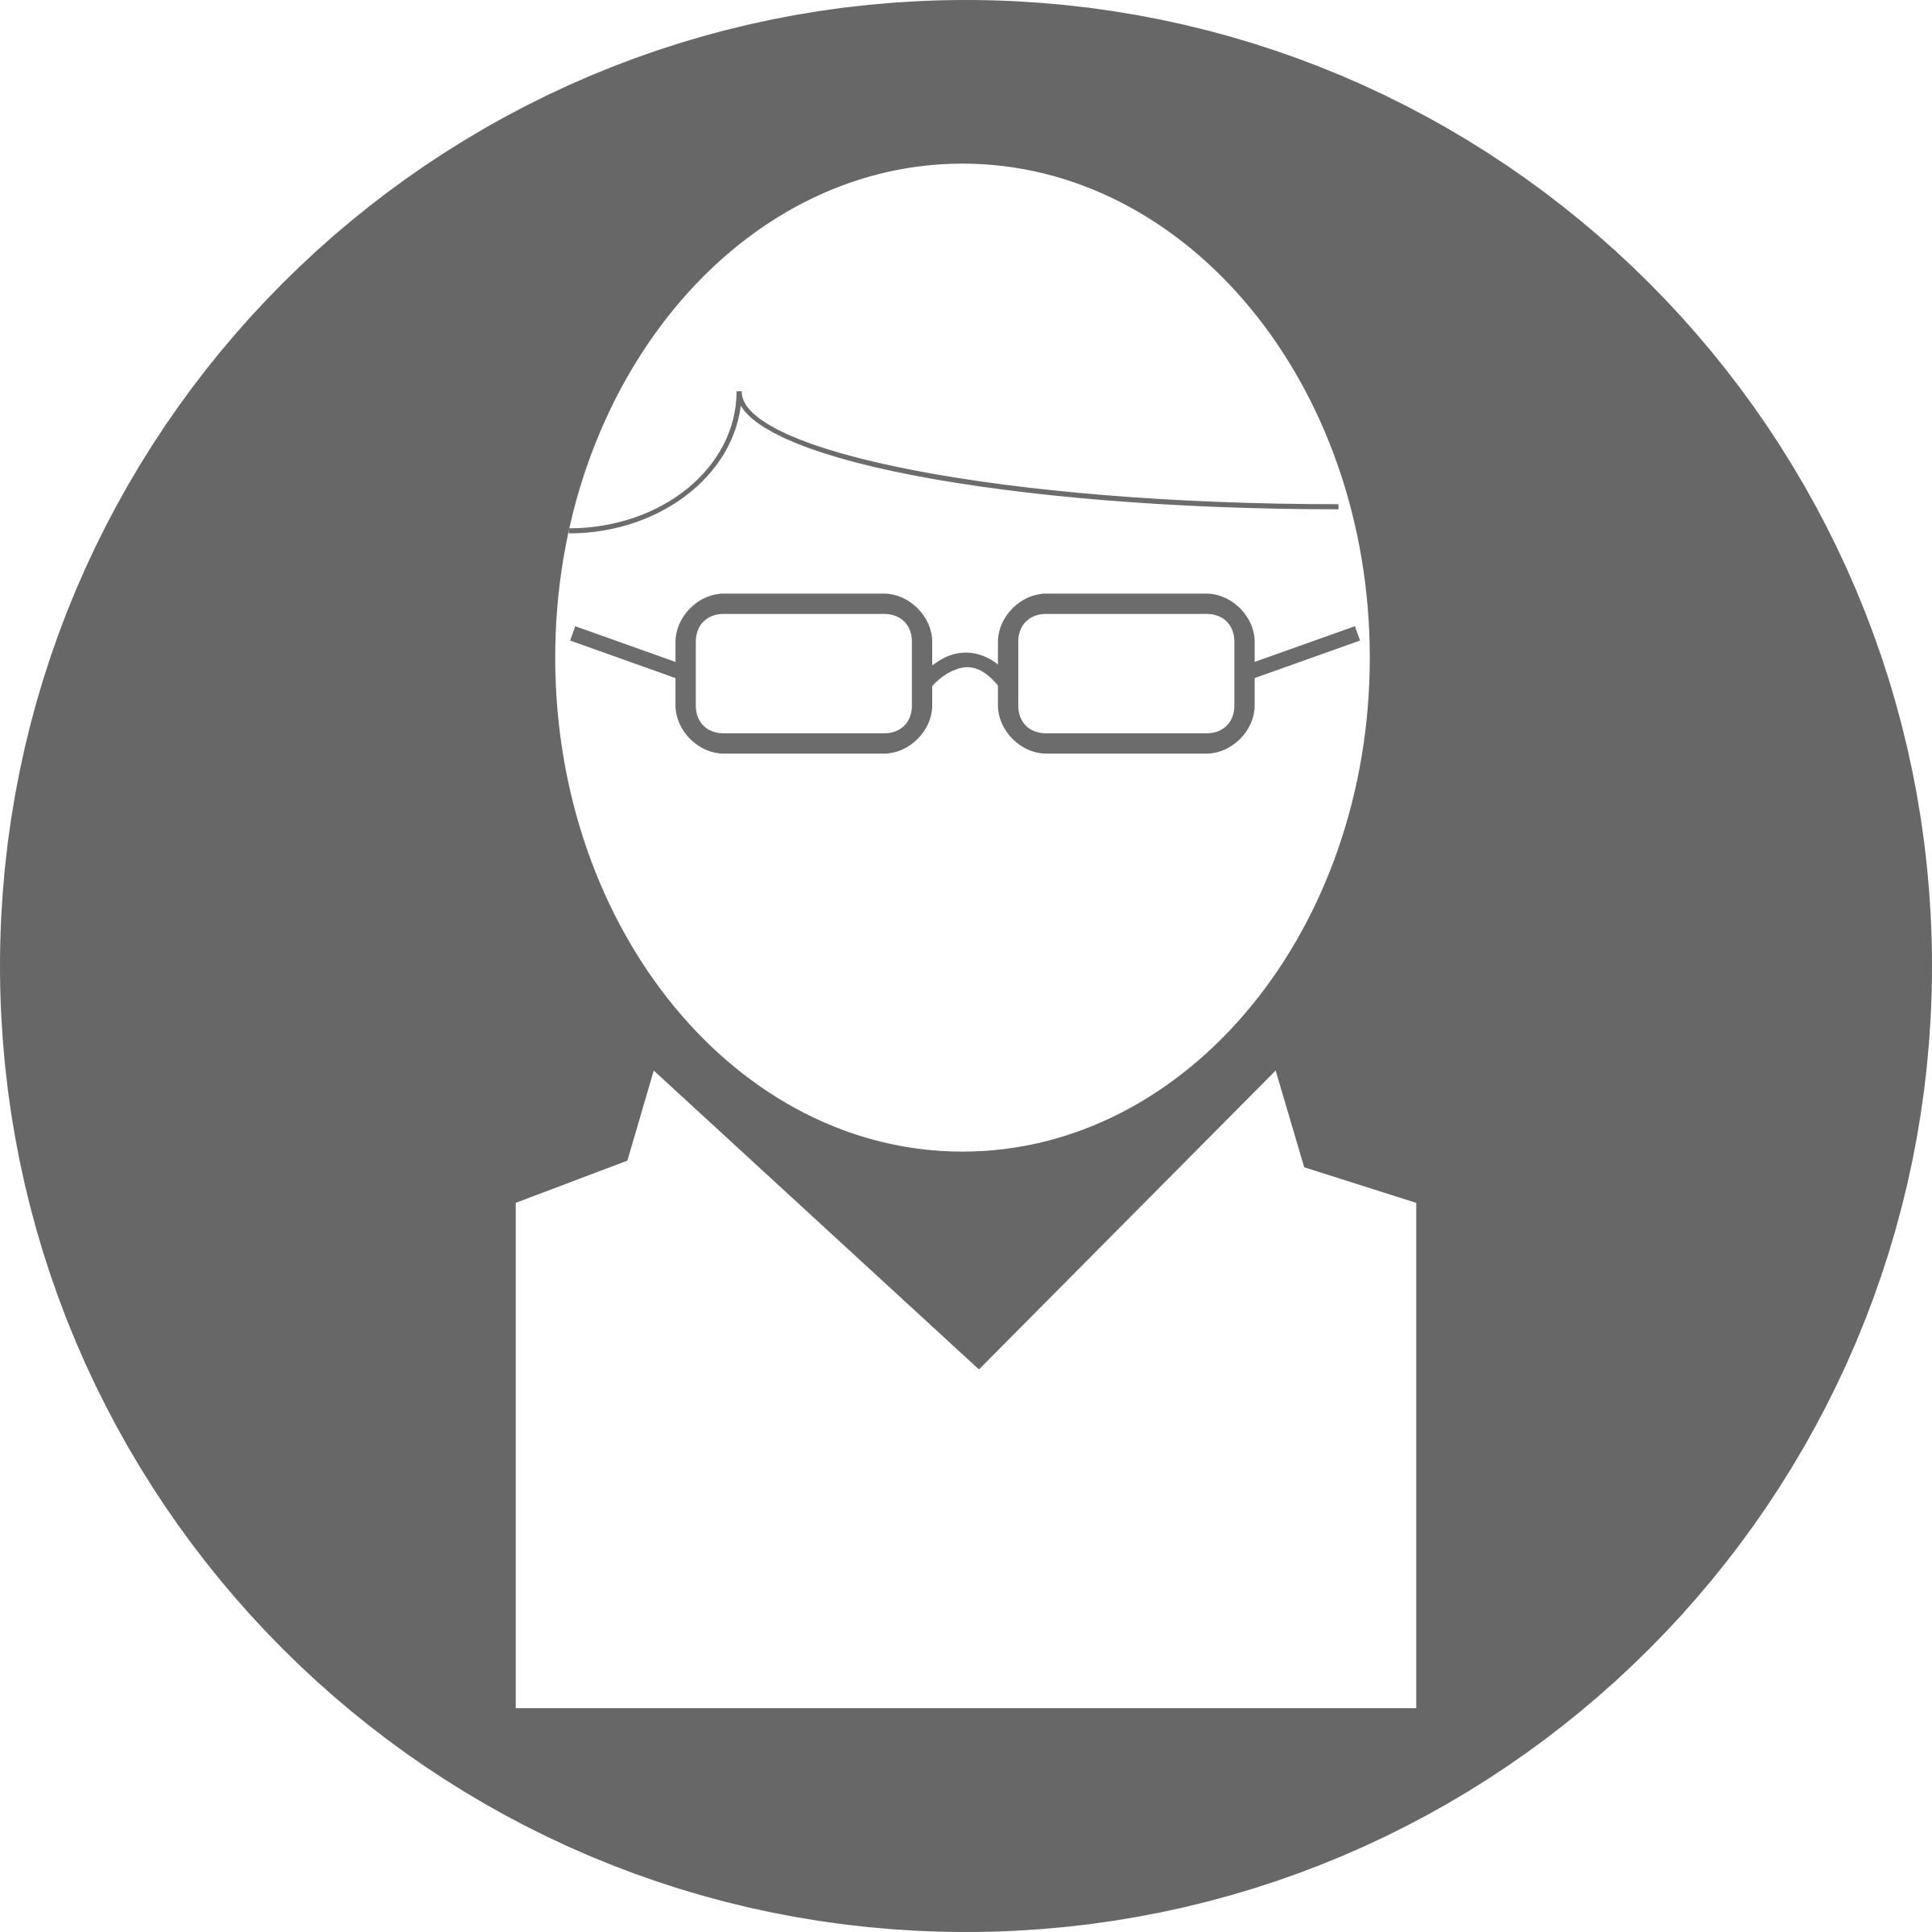 Icon: Glasses Hair Part White on Grey by mrjeremiahross